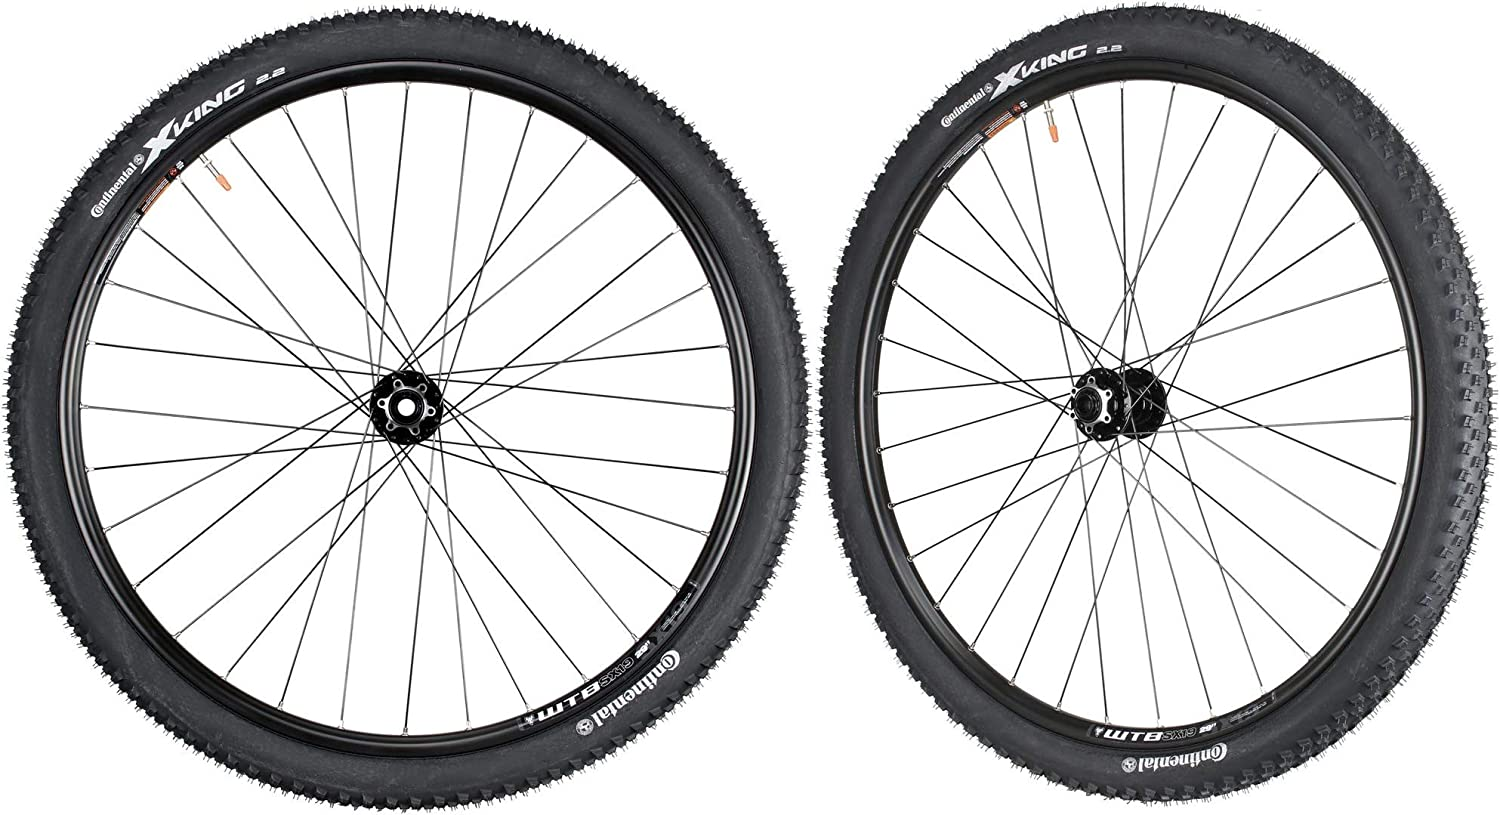 WTB SX19 Mountain Bike Bicycle Novatec Hubs & Tires Wheelset 11s